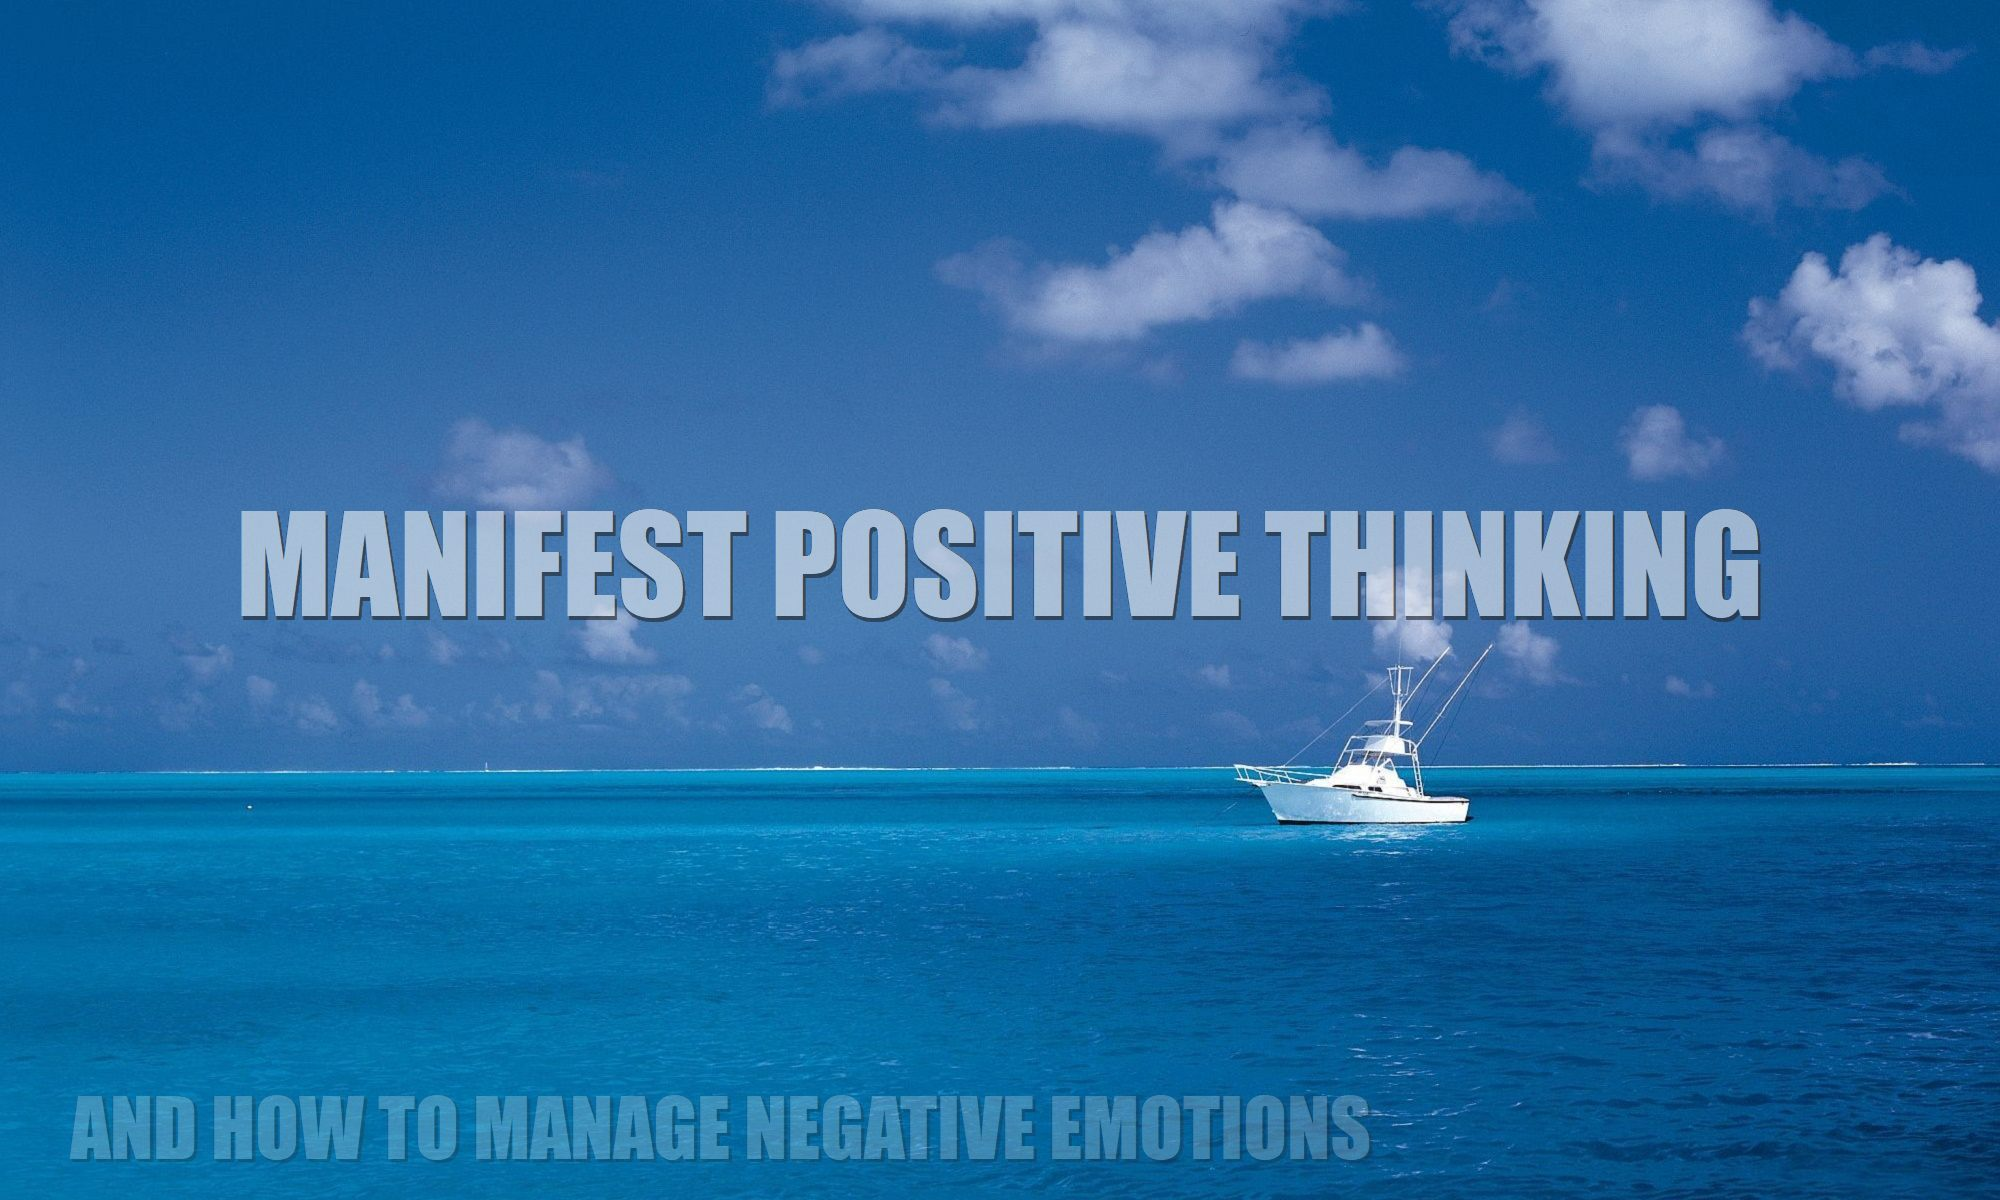 Can-thoughts-create-matter-feature-image-21-1